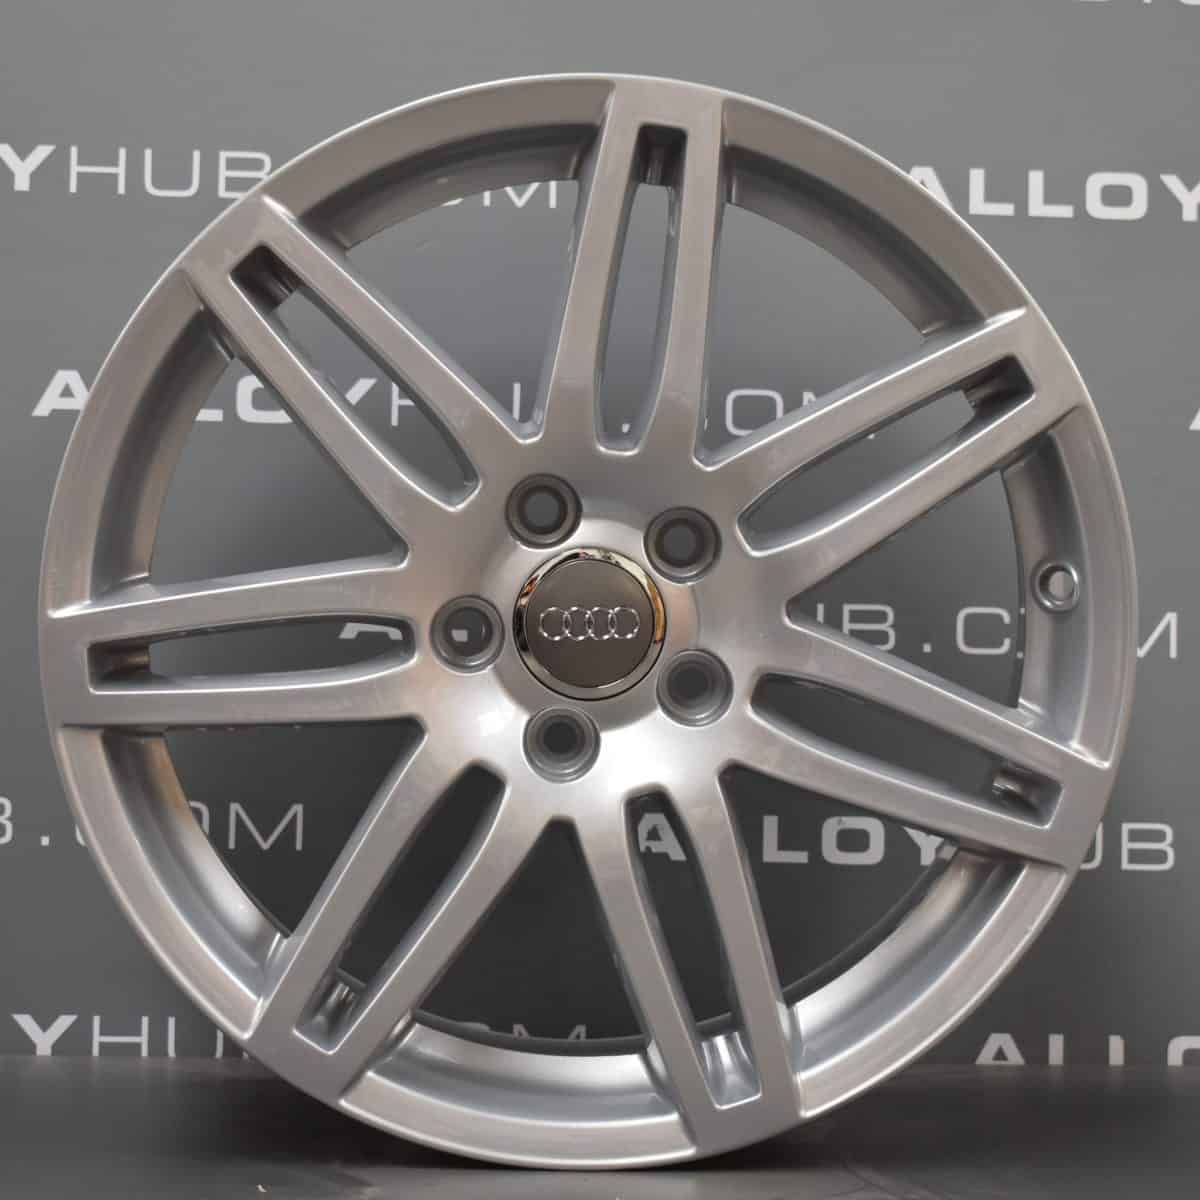 Genuine Audi A3 8P 7 Double Spoke S-Line Black Edition 18″ Inch Alloy Wheels with Silver Finish 8P0 601 025 BC